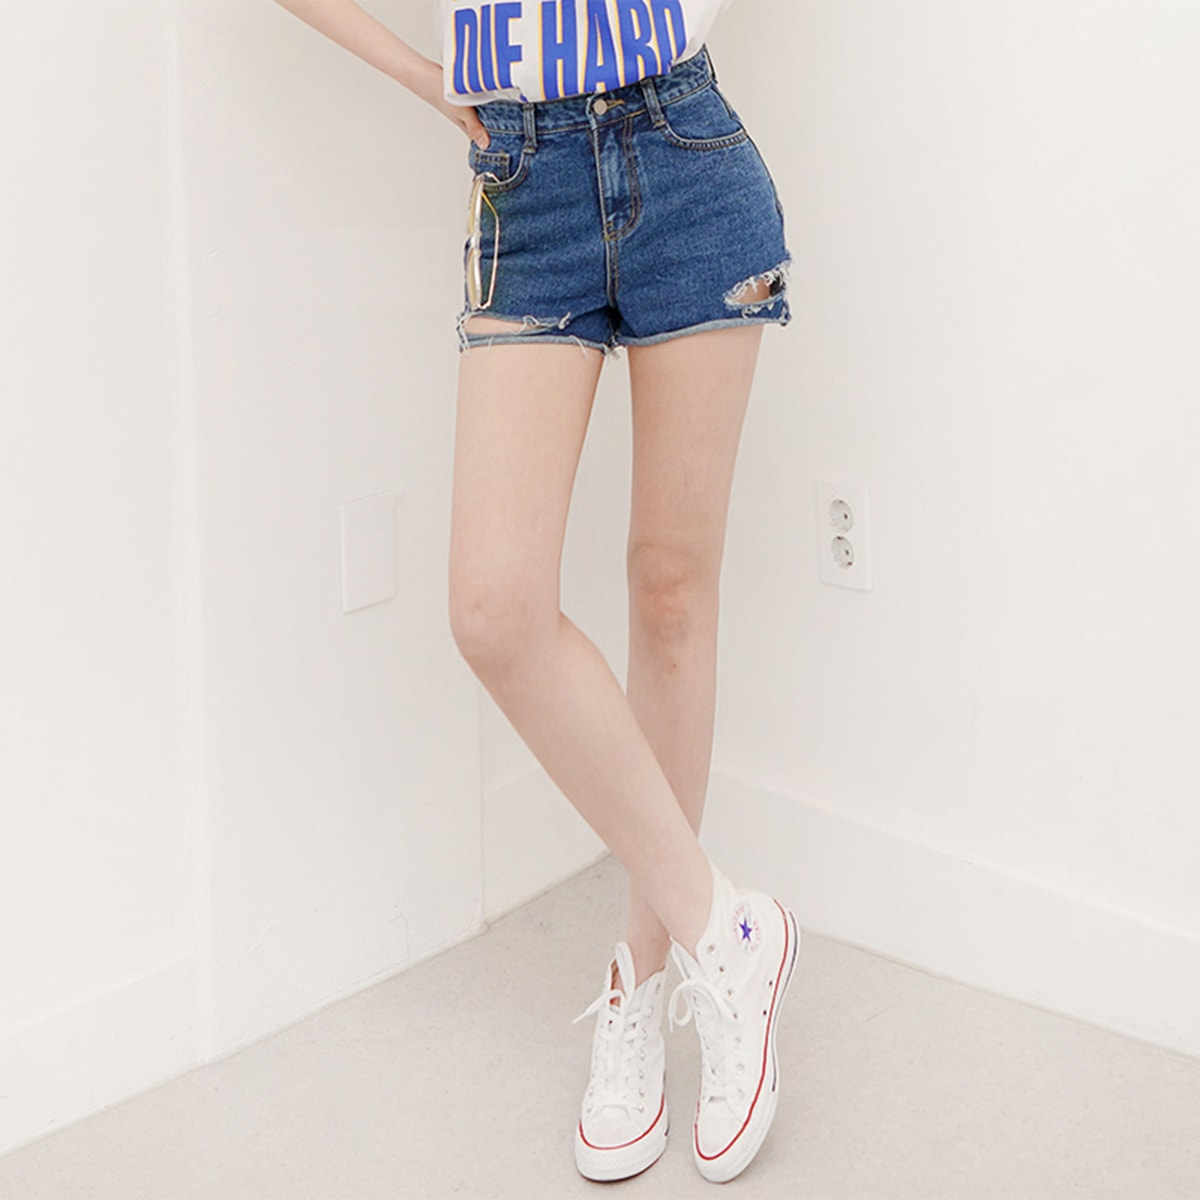 Yamibuy.com:Customer reviews:SSUMPARTY High Rise Distressed Wide-Leg Shorts #Dark Blue S(25-26)